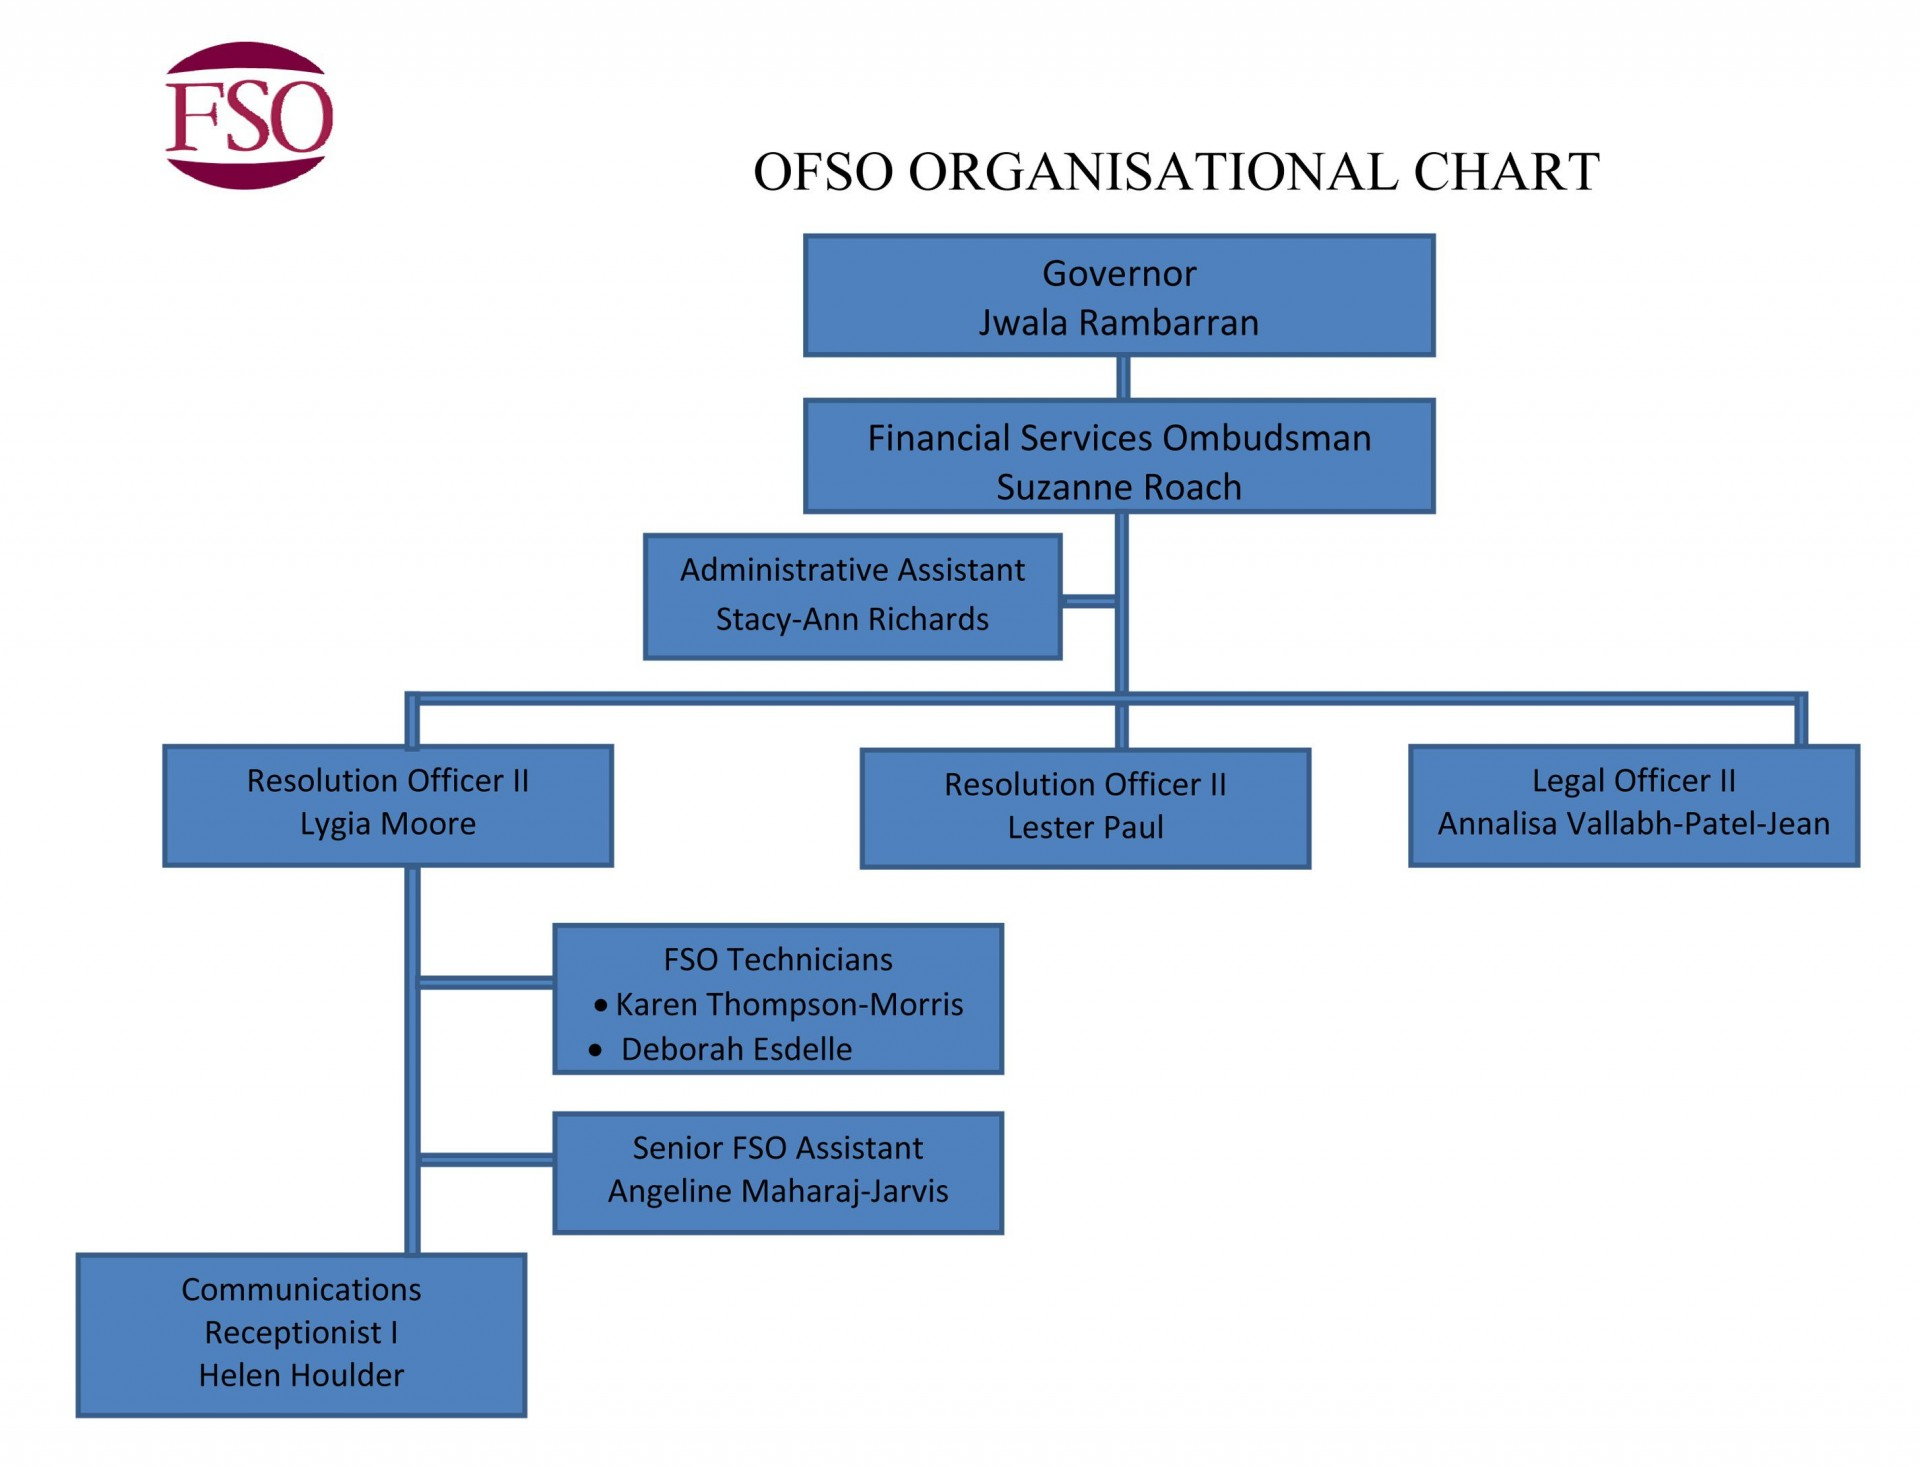 003 Fascinating Org Chart Template Excel 2013 High Def  Organizational1920